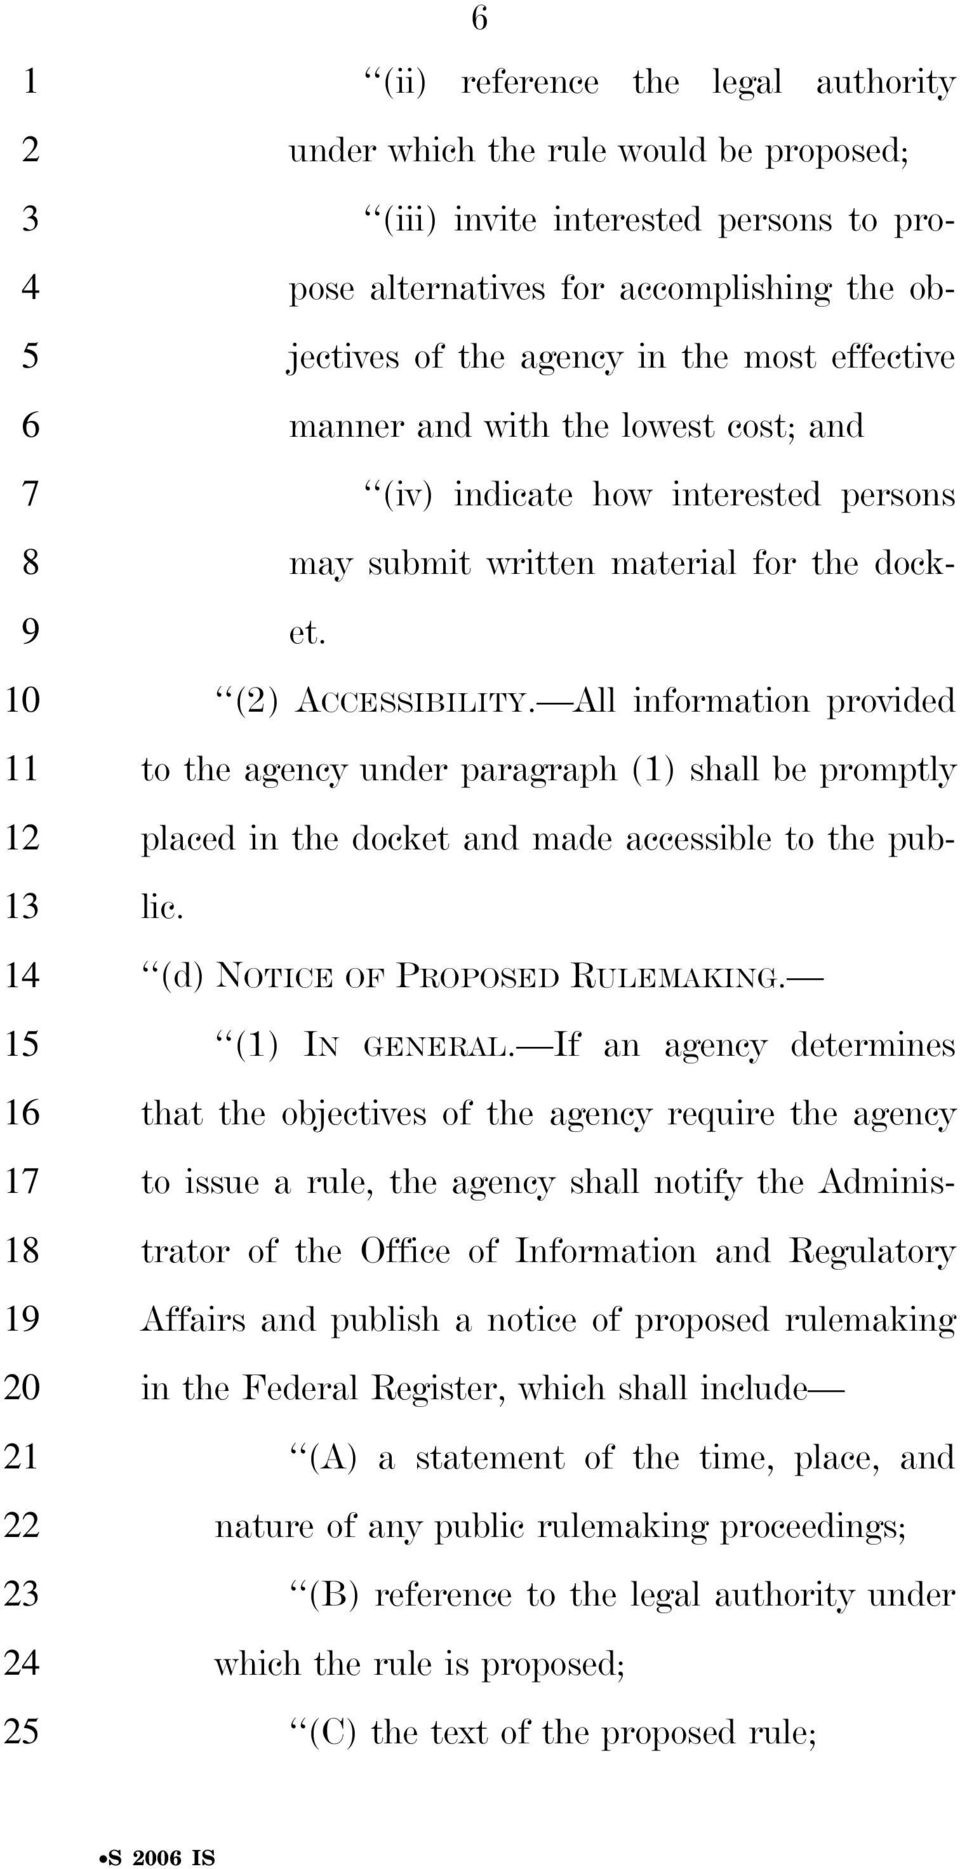 All information provided to the agency under paragraph (1) shall be promptly placed in the docket and made accessible to the pub- lic. 25 (d) NOTICE OF PROPOSED RULEMAKING. (1) IN GENERAL.